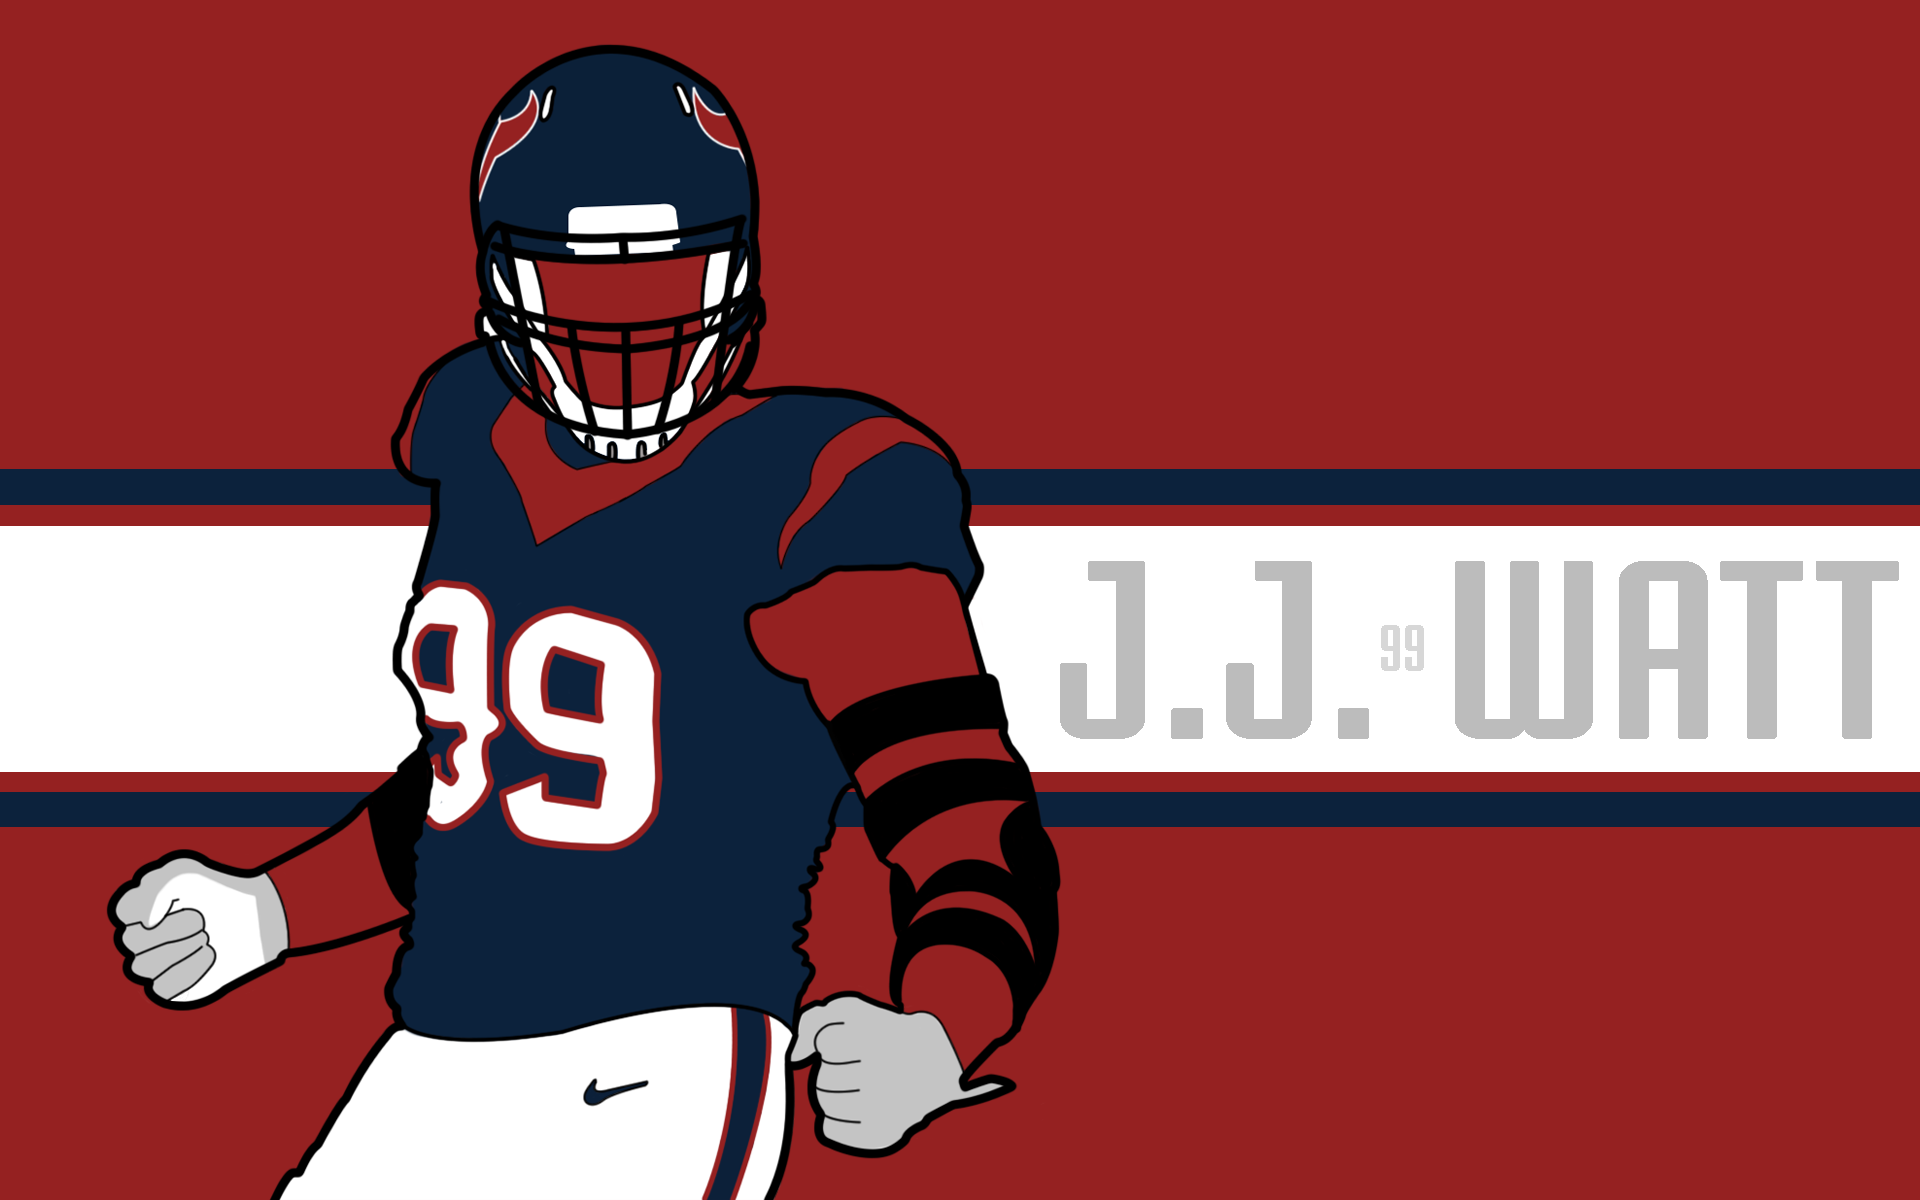 jj watt wallpapers high definition free download